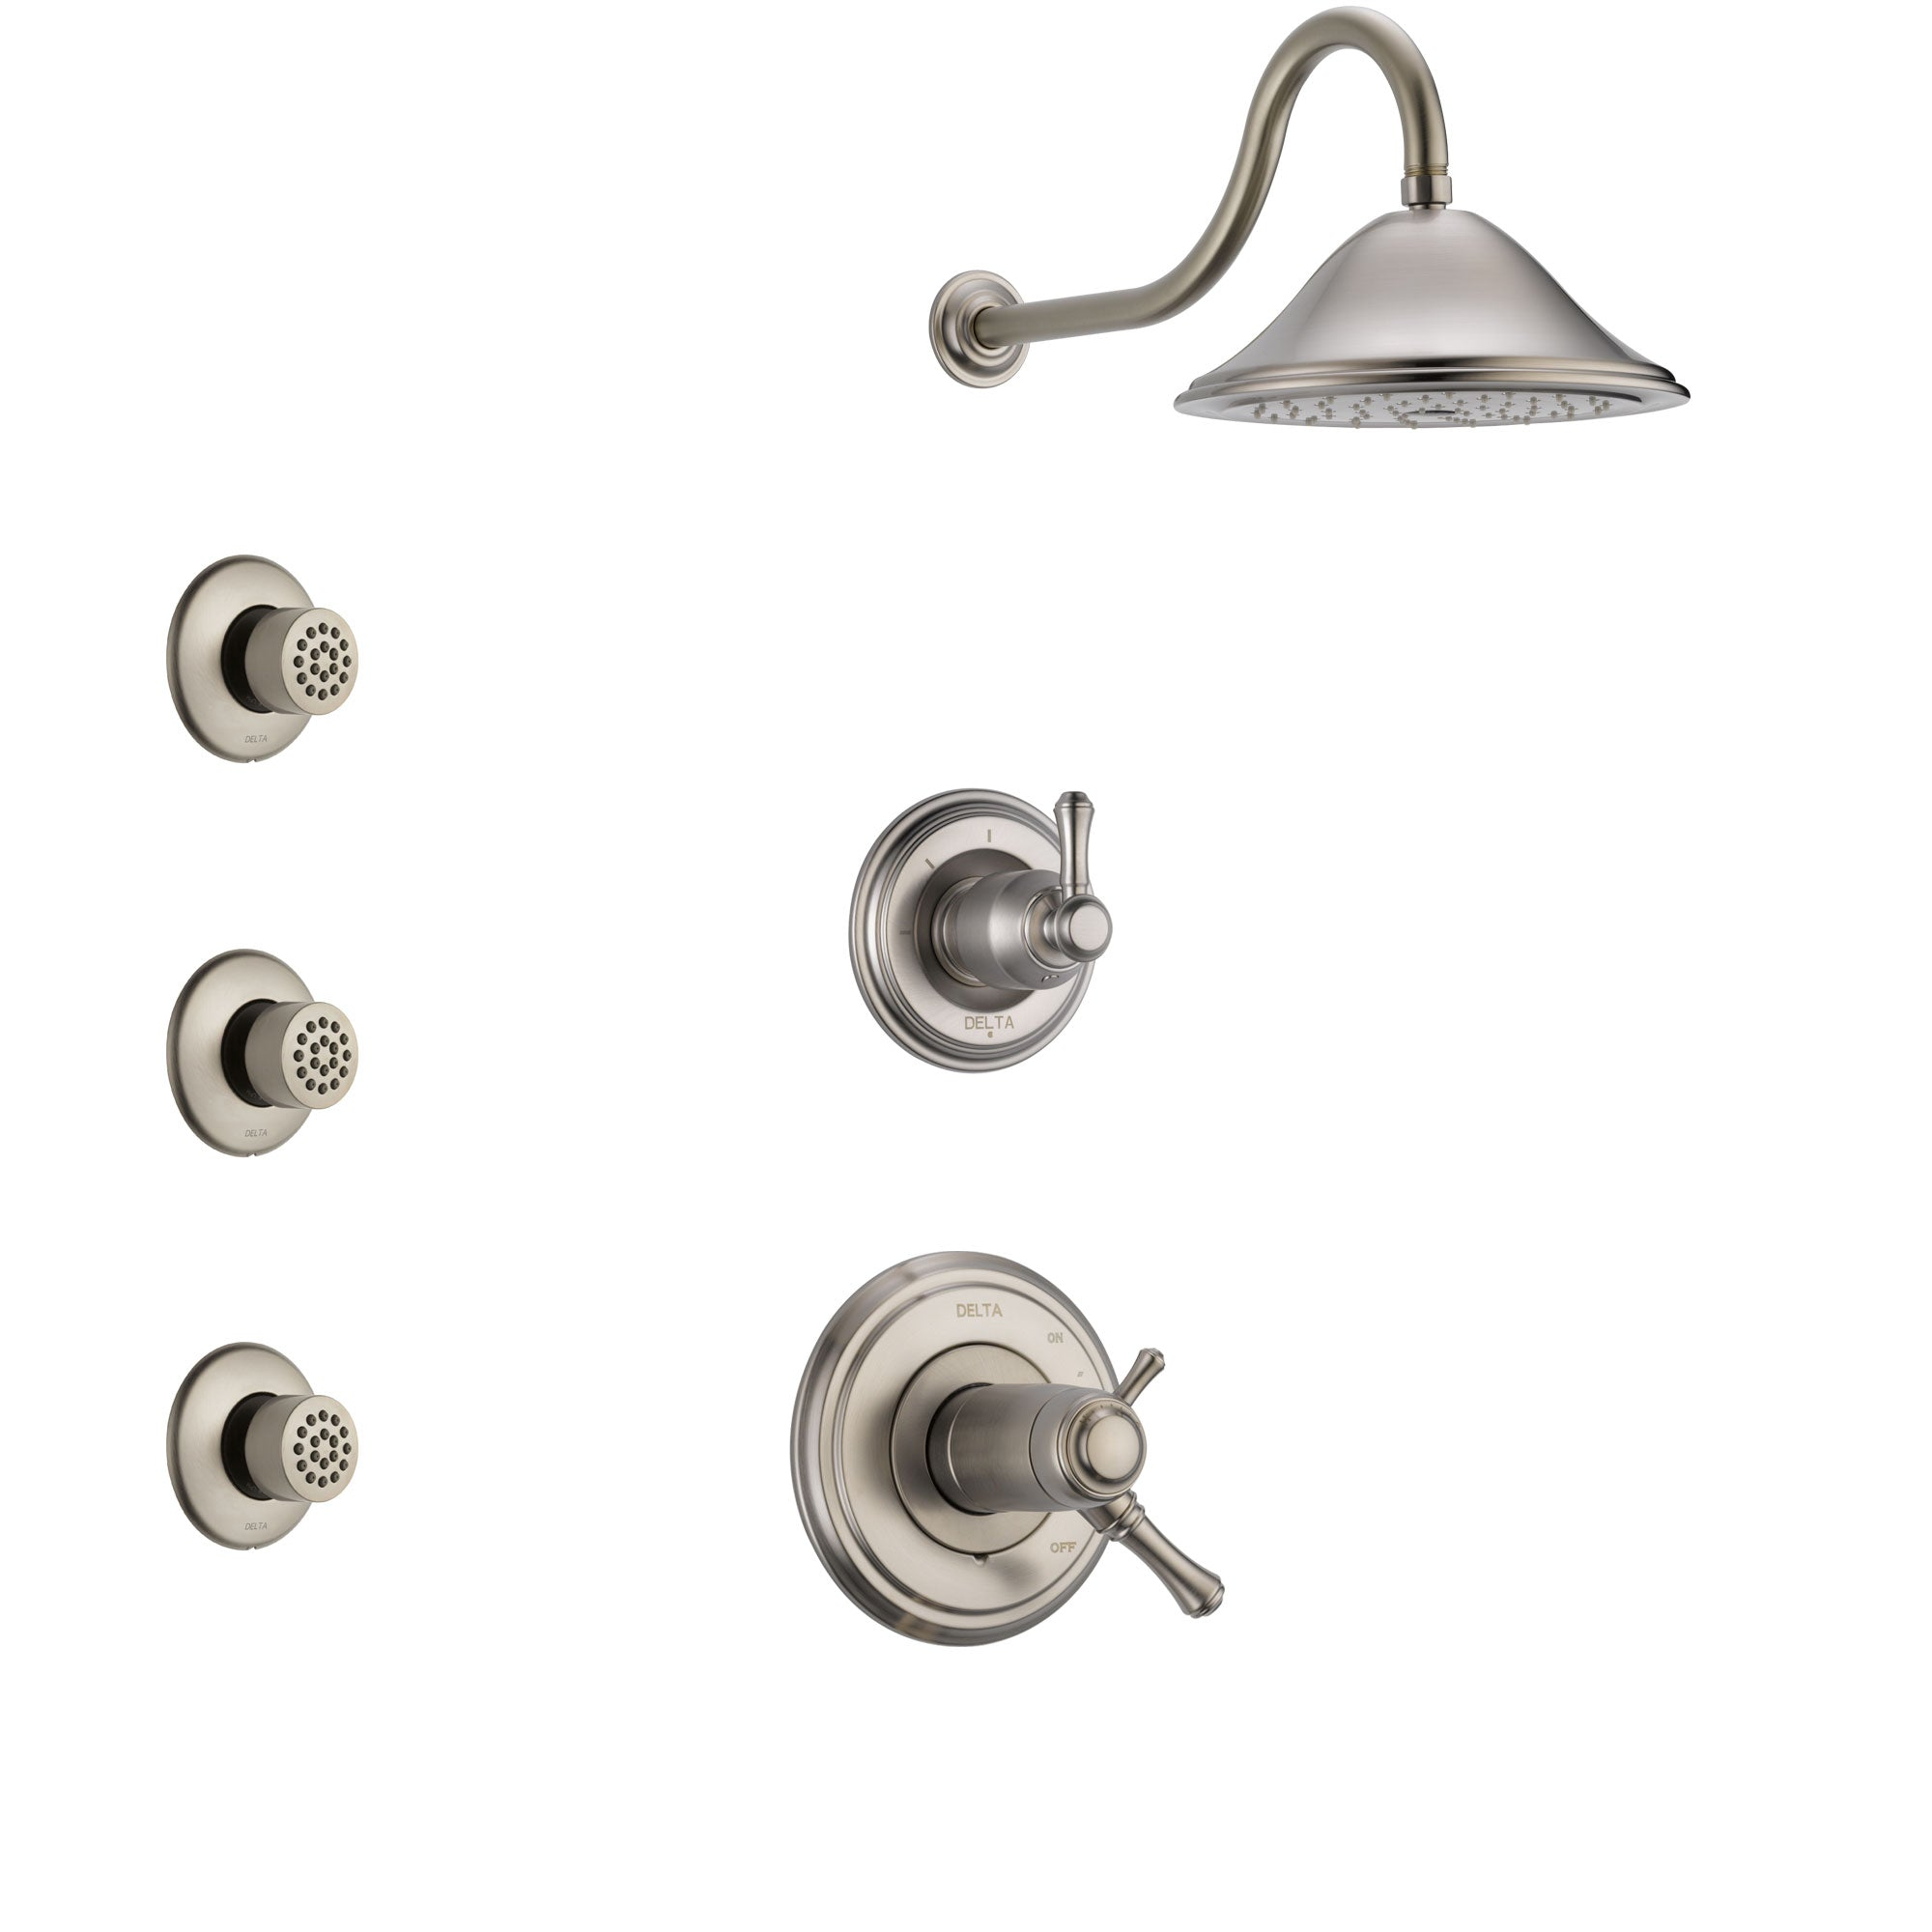 Delta Cassidy Dual Thermostatic Control Handle Stainless Steel Finish Shower System, 3-Setting Diverter, Showerhead, and 3 Body Sprays SS17T2972SS2